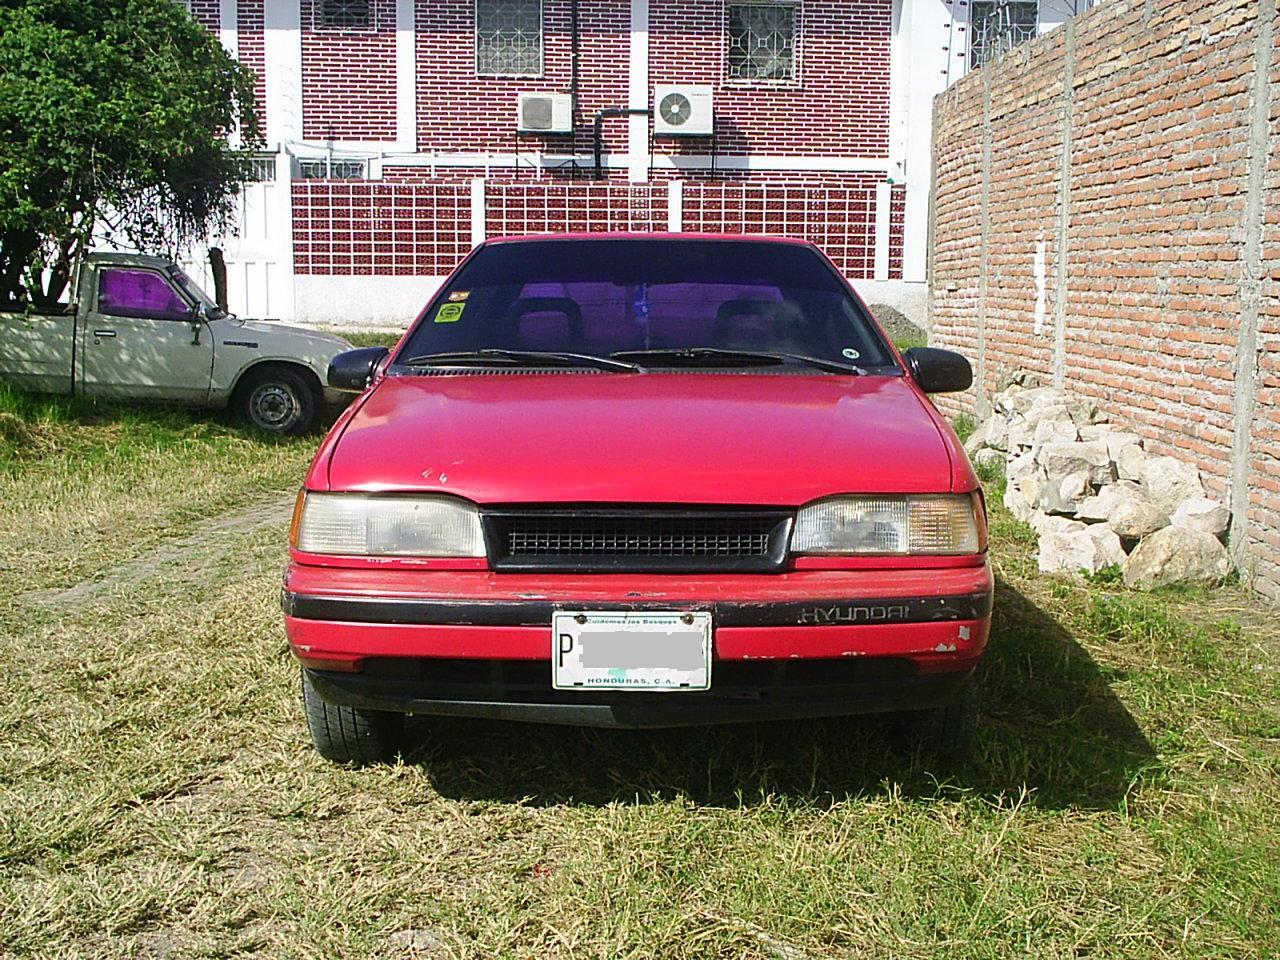 0e51f02466 Another mrgiron1 1990 Hyundai Excel post...4331398 by mrgiron1